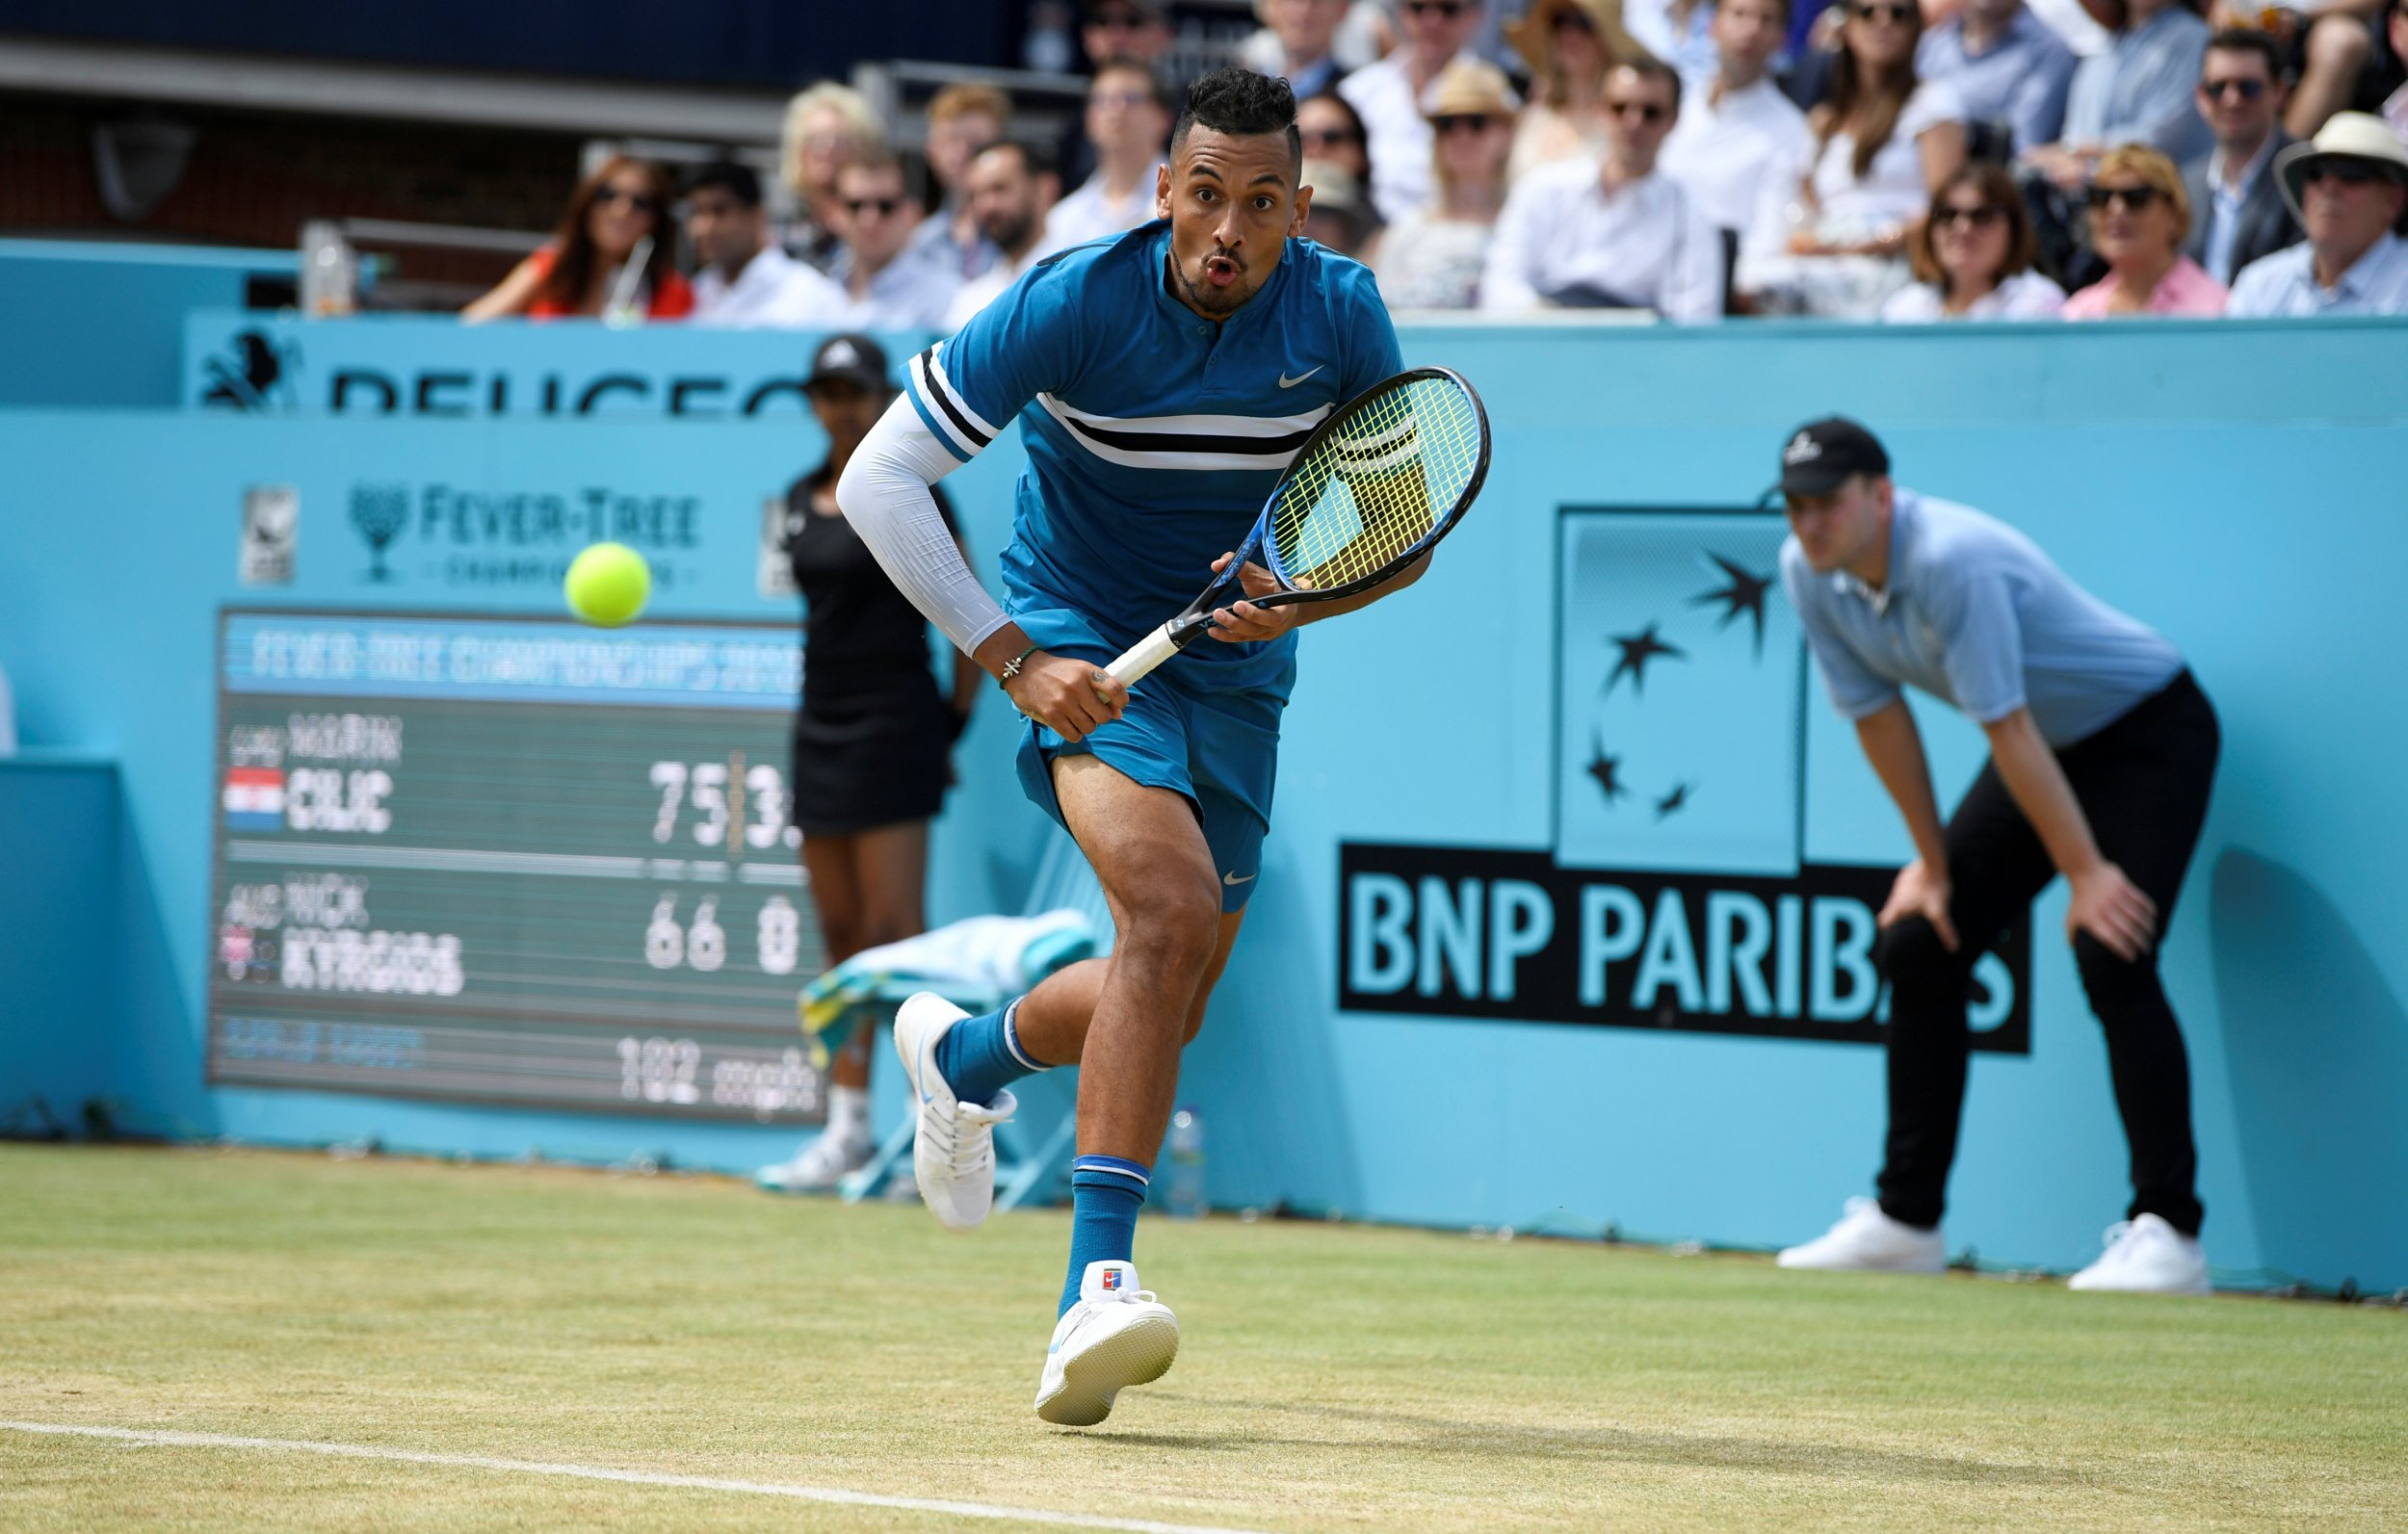 Kyrgios plays the Queen's Club Semifinals